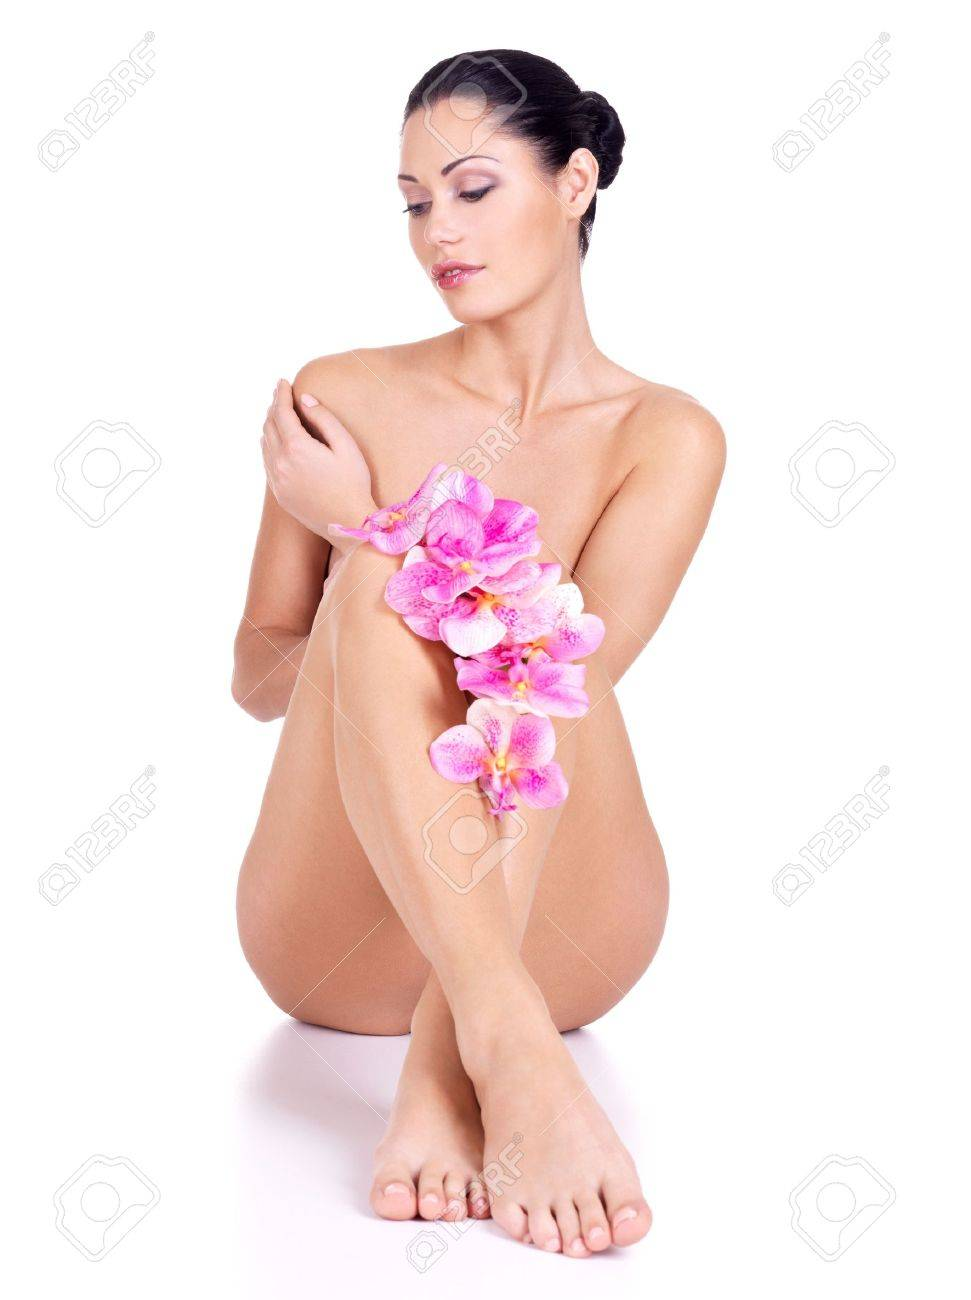 Young woman with nude body sits on the white background with flowers Stock Photo - 16410681